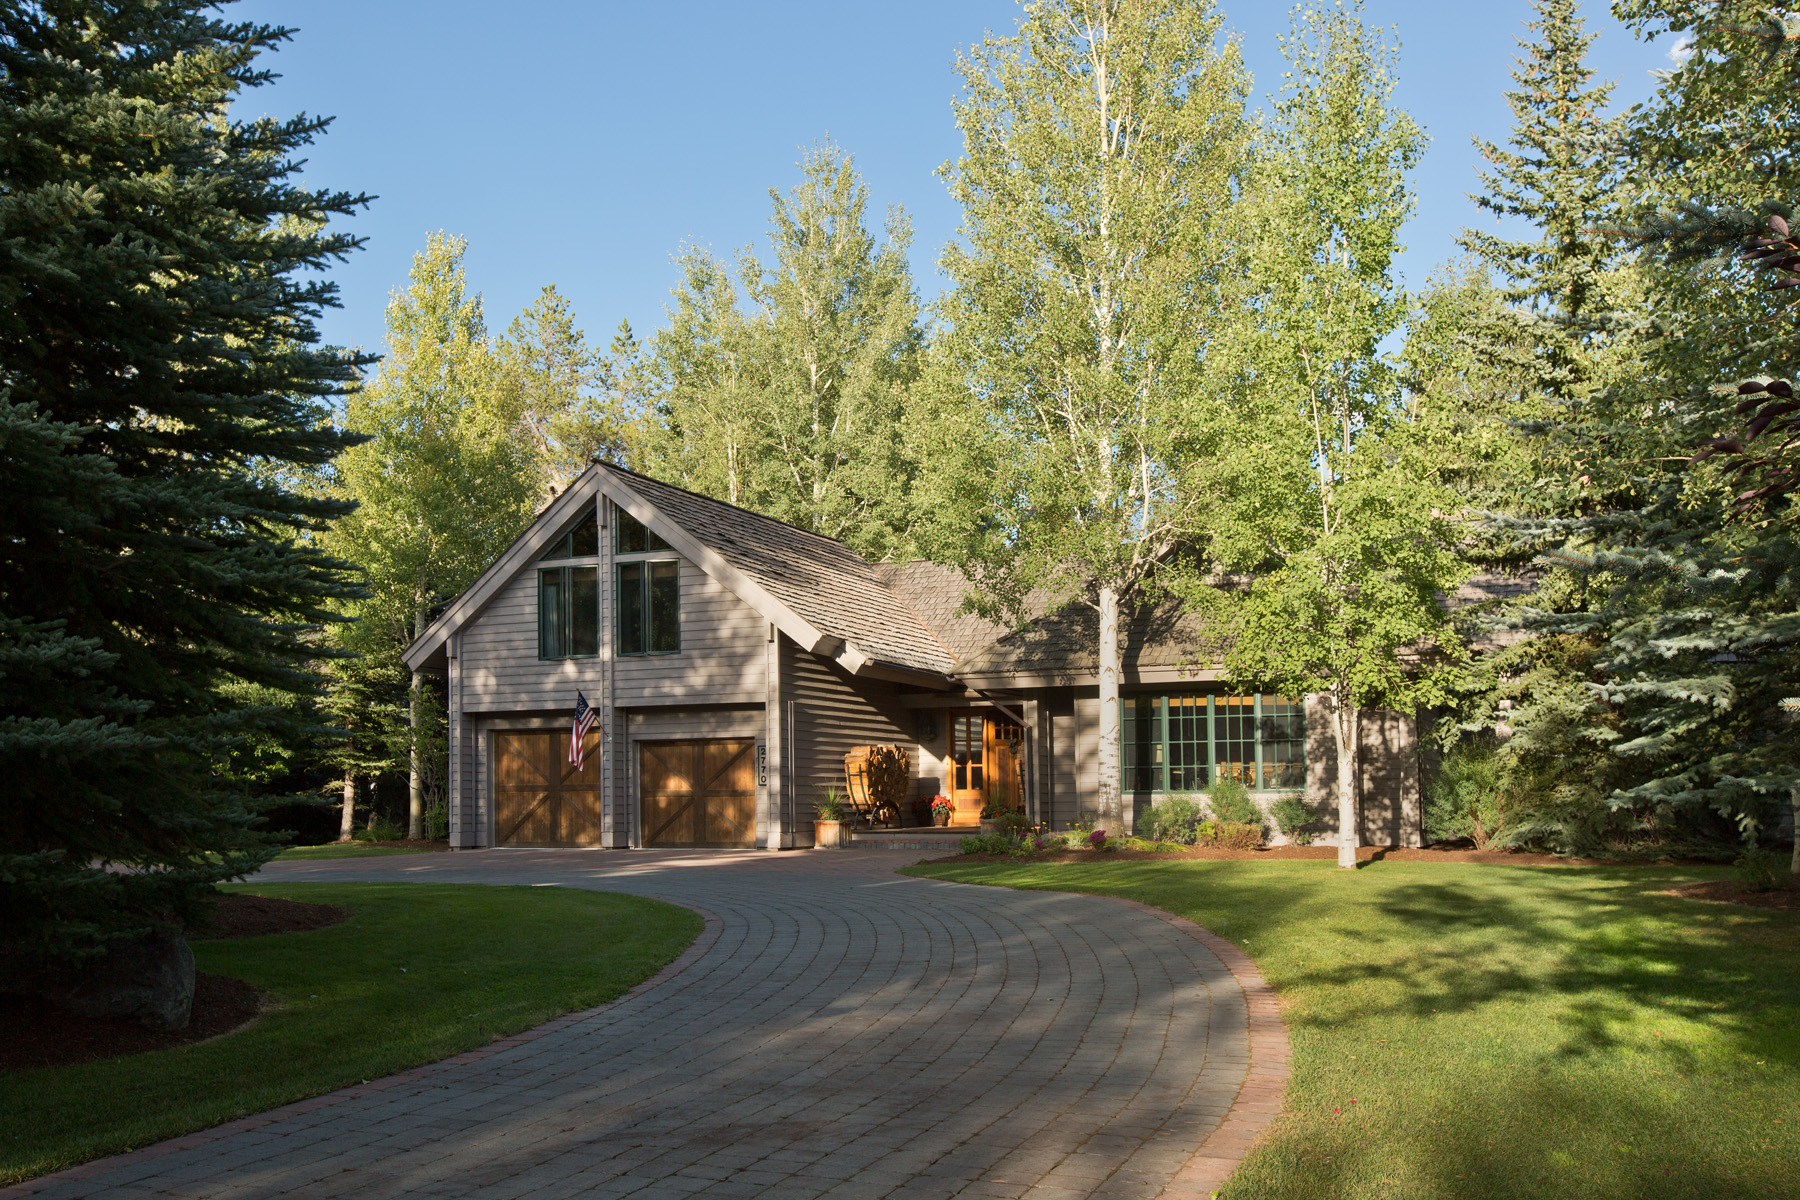 Property For Sale at Elegantly Appointed Teton Pines Home